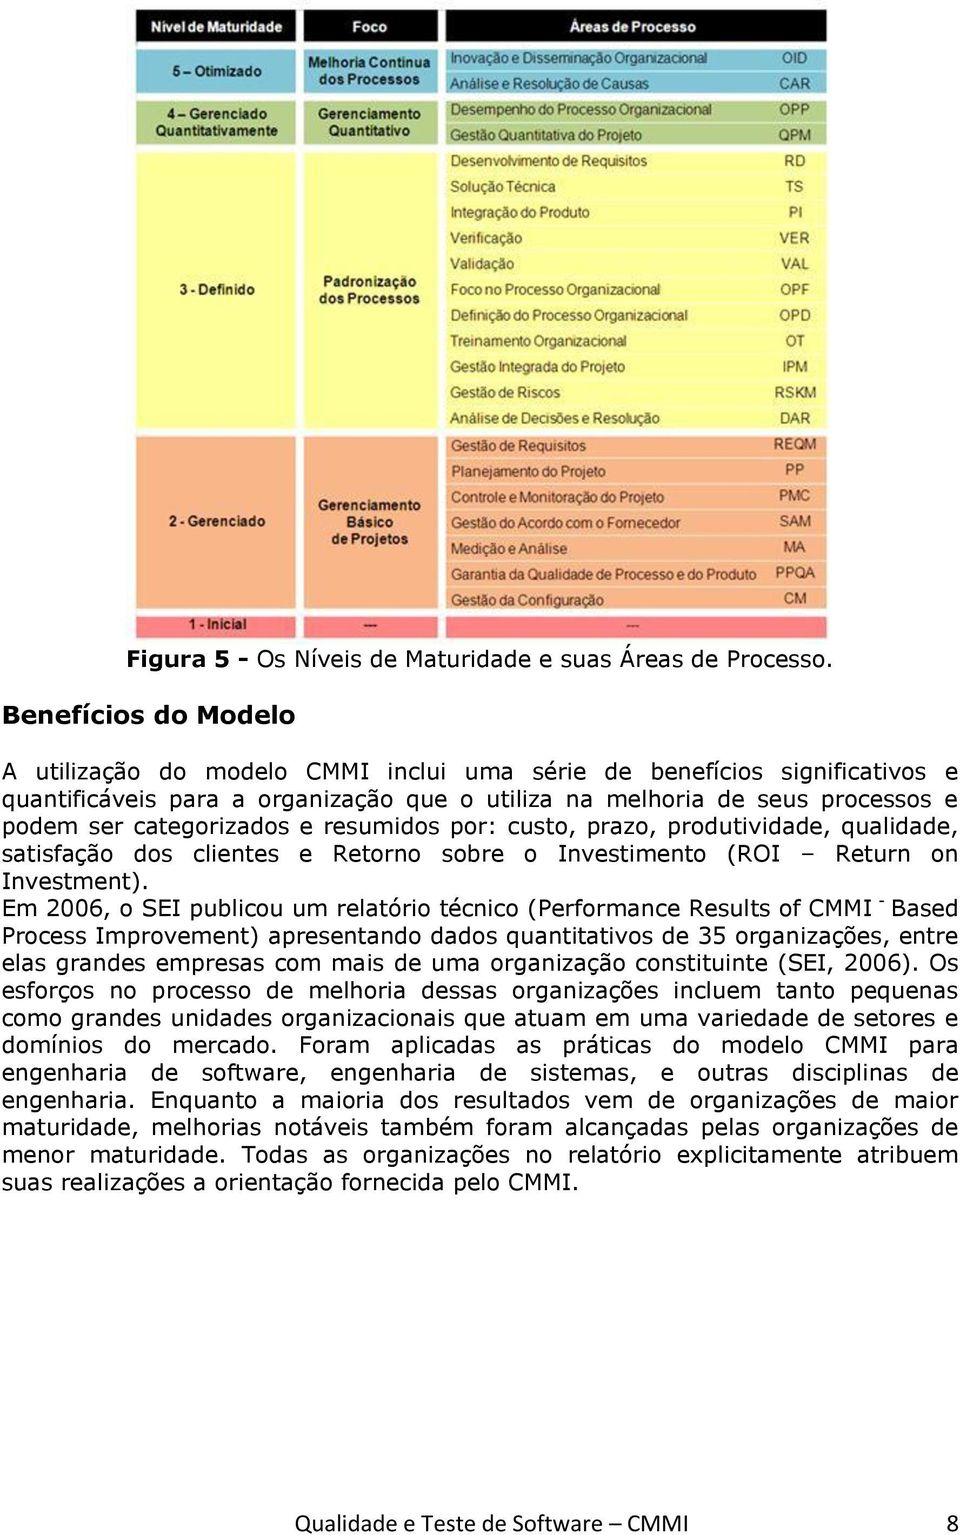 Capability Maturity Model Integration Cmmi Pdf